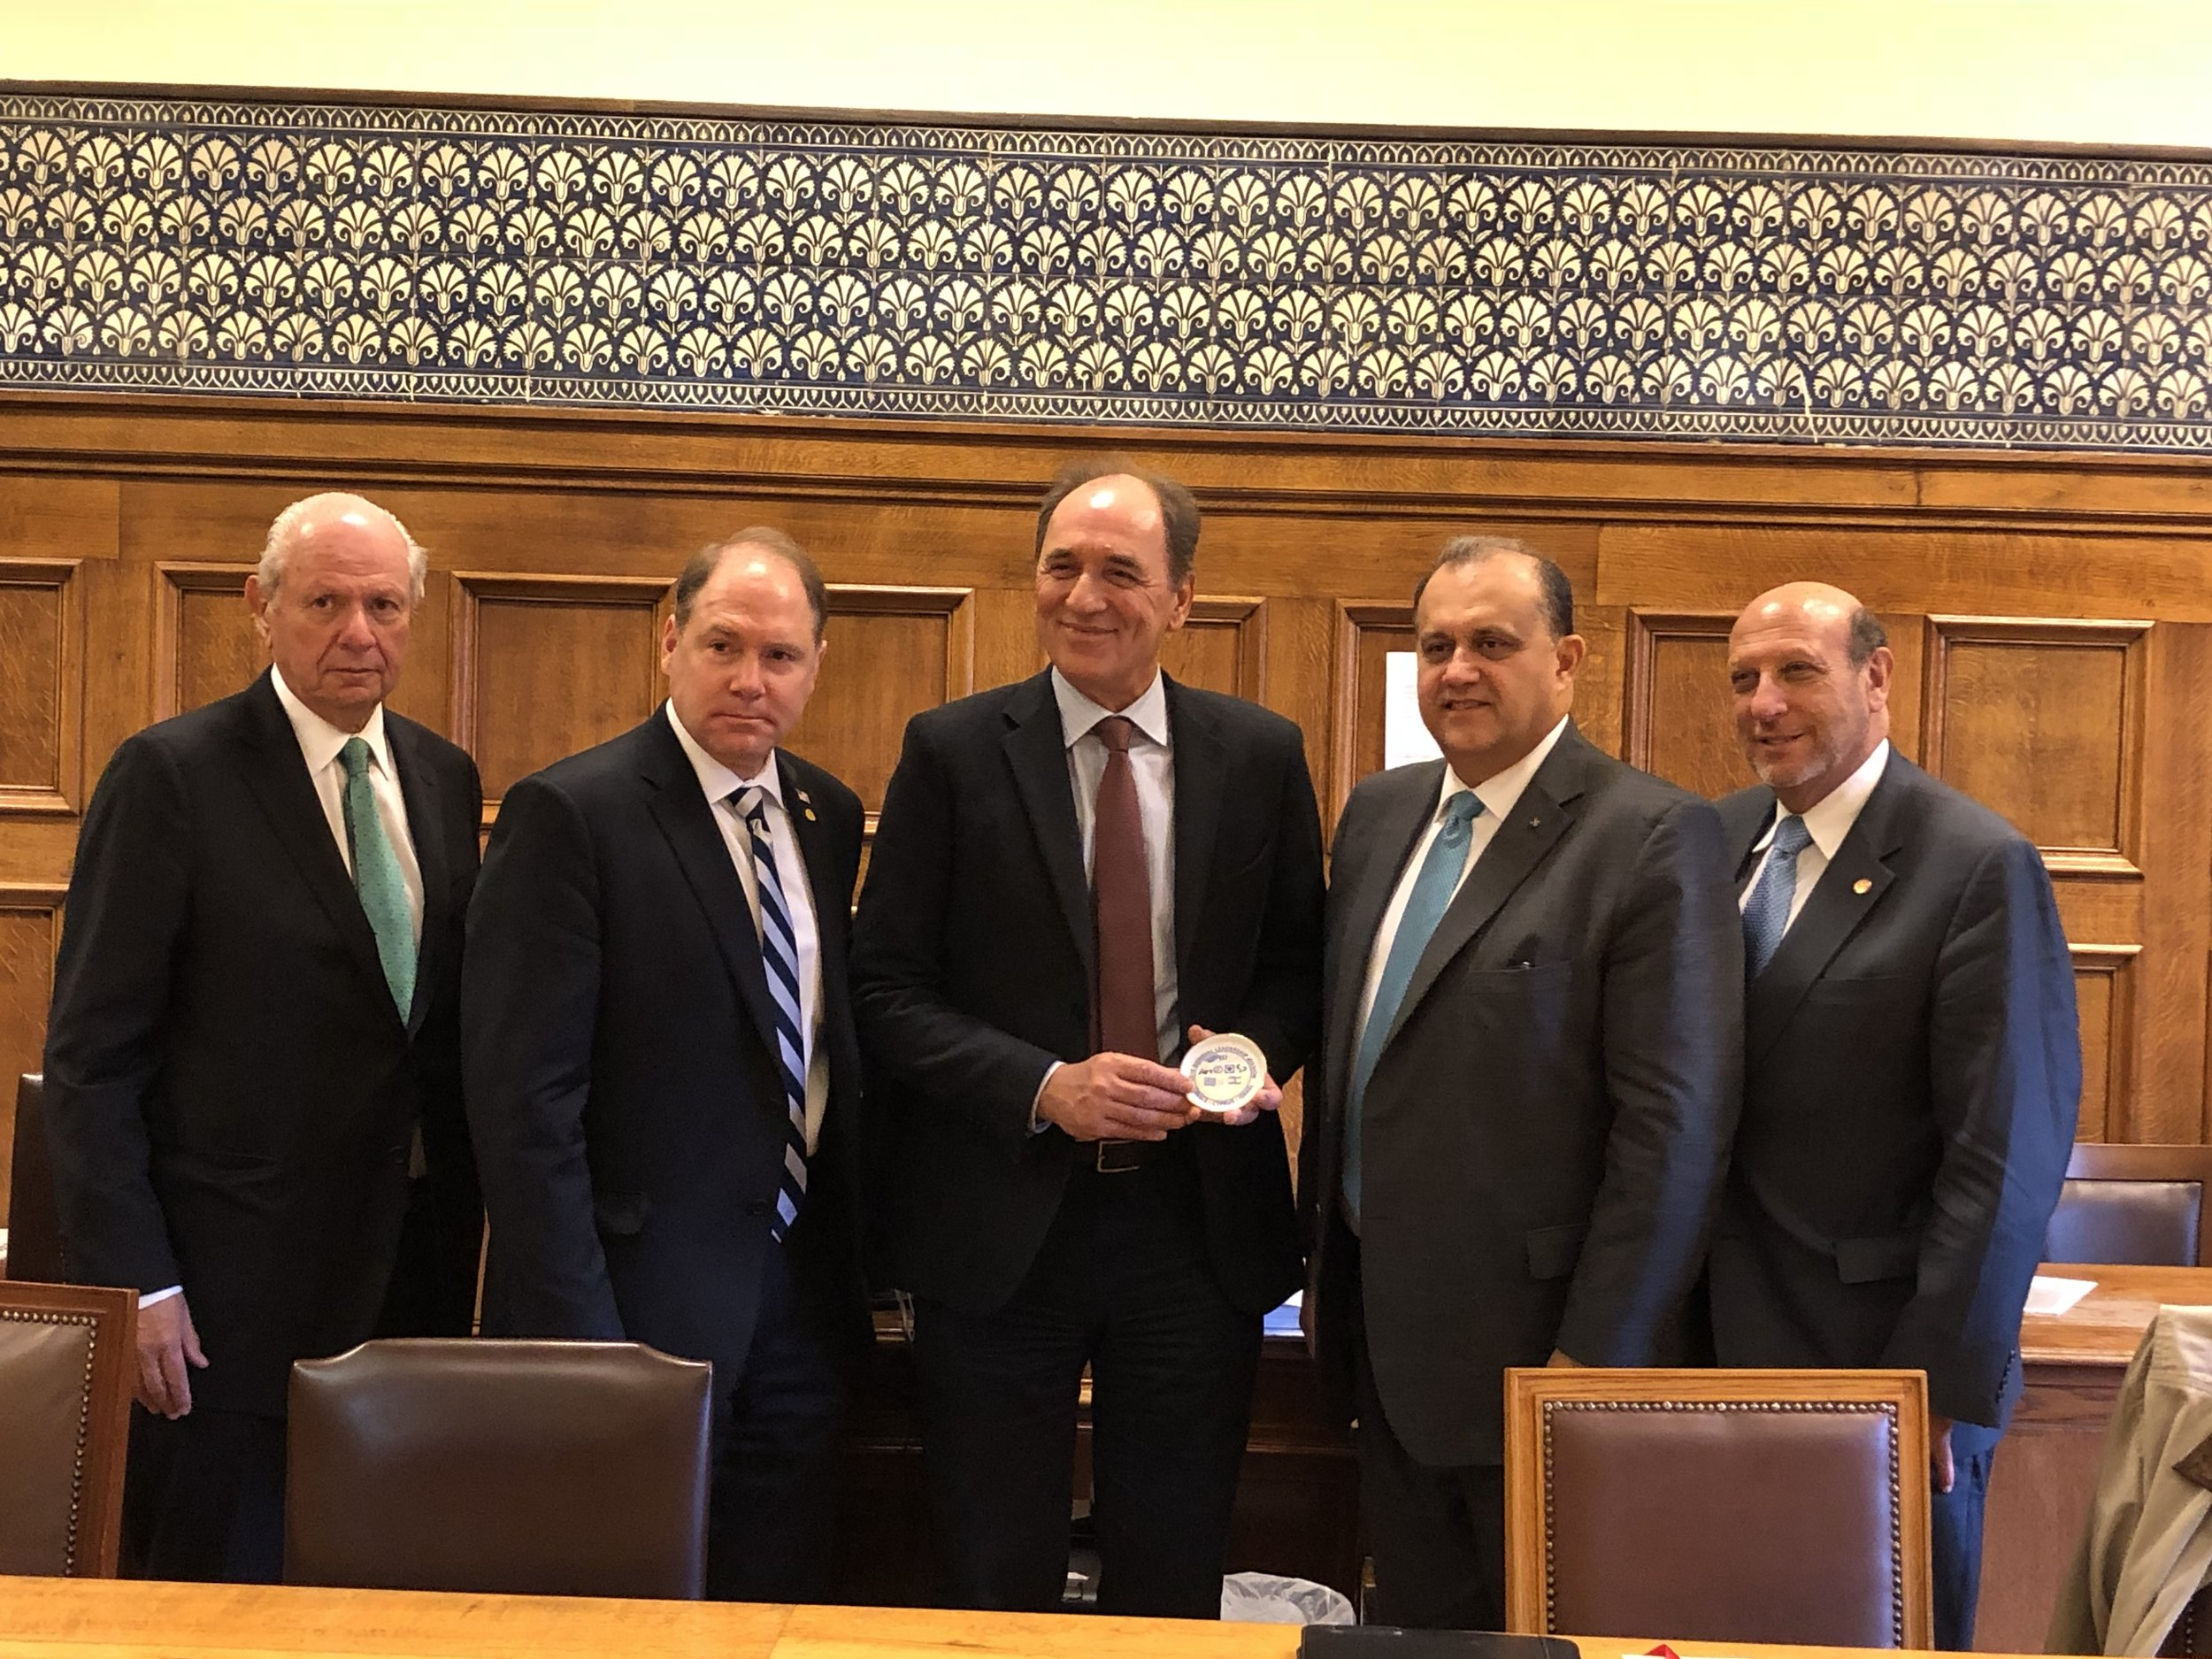 Delegation heads with Minister George Stathakis, Greek Minister of Energy & Environment.